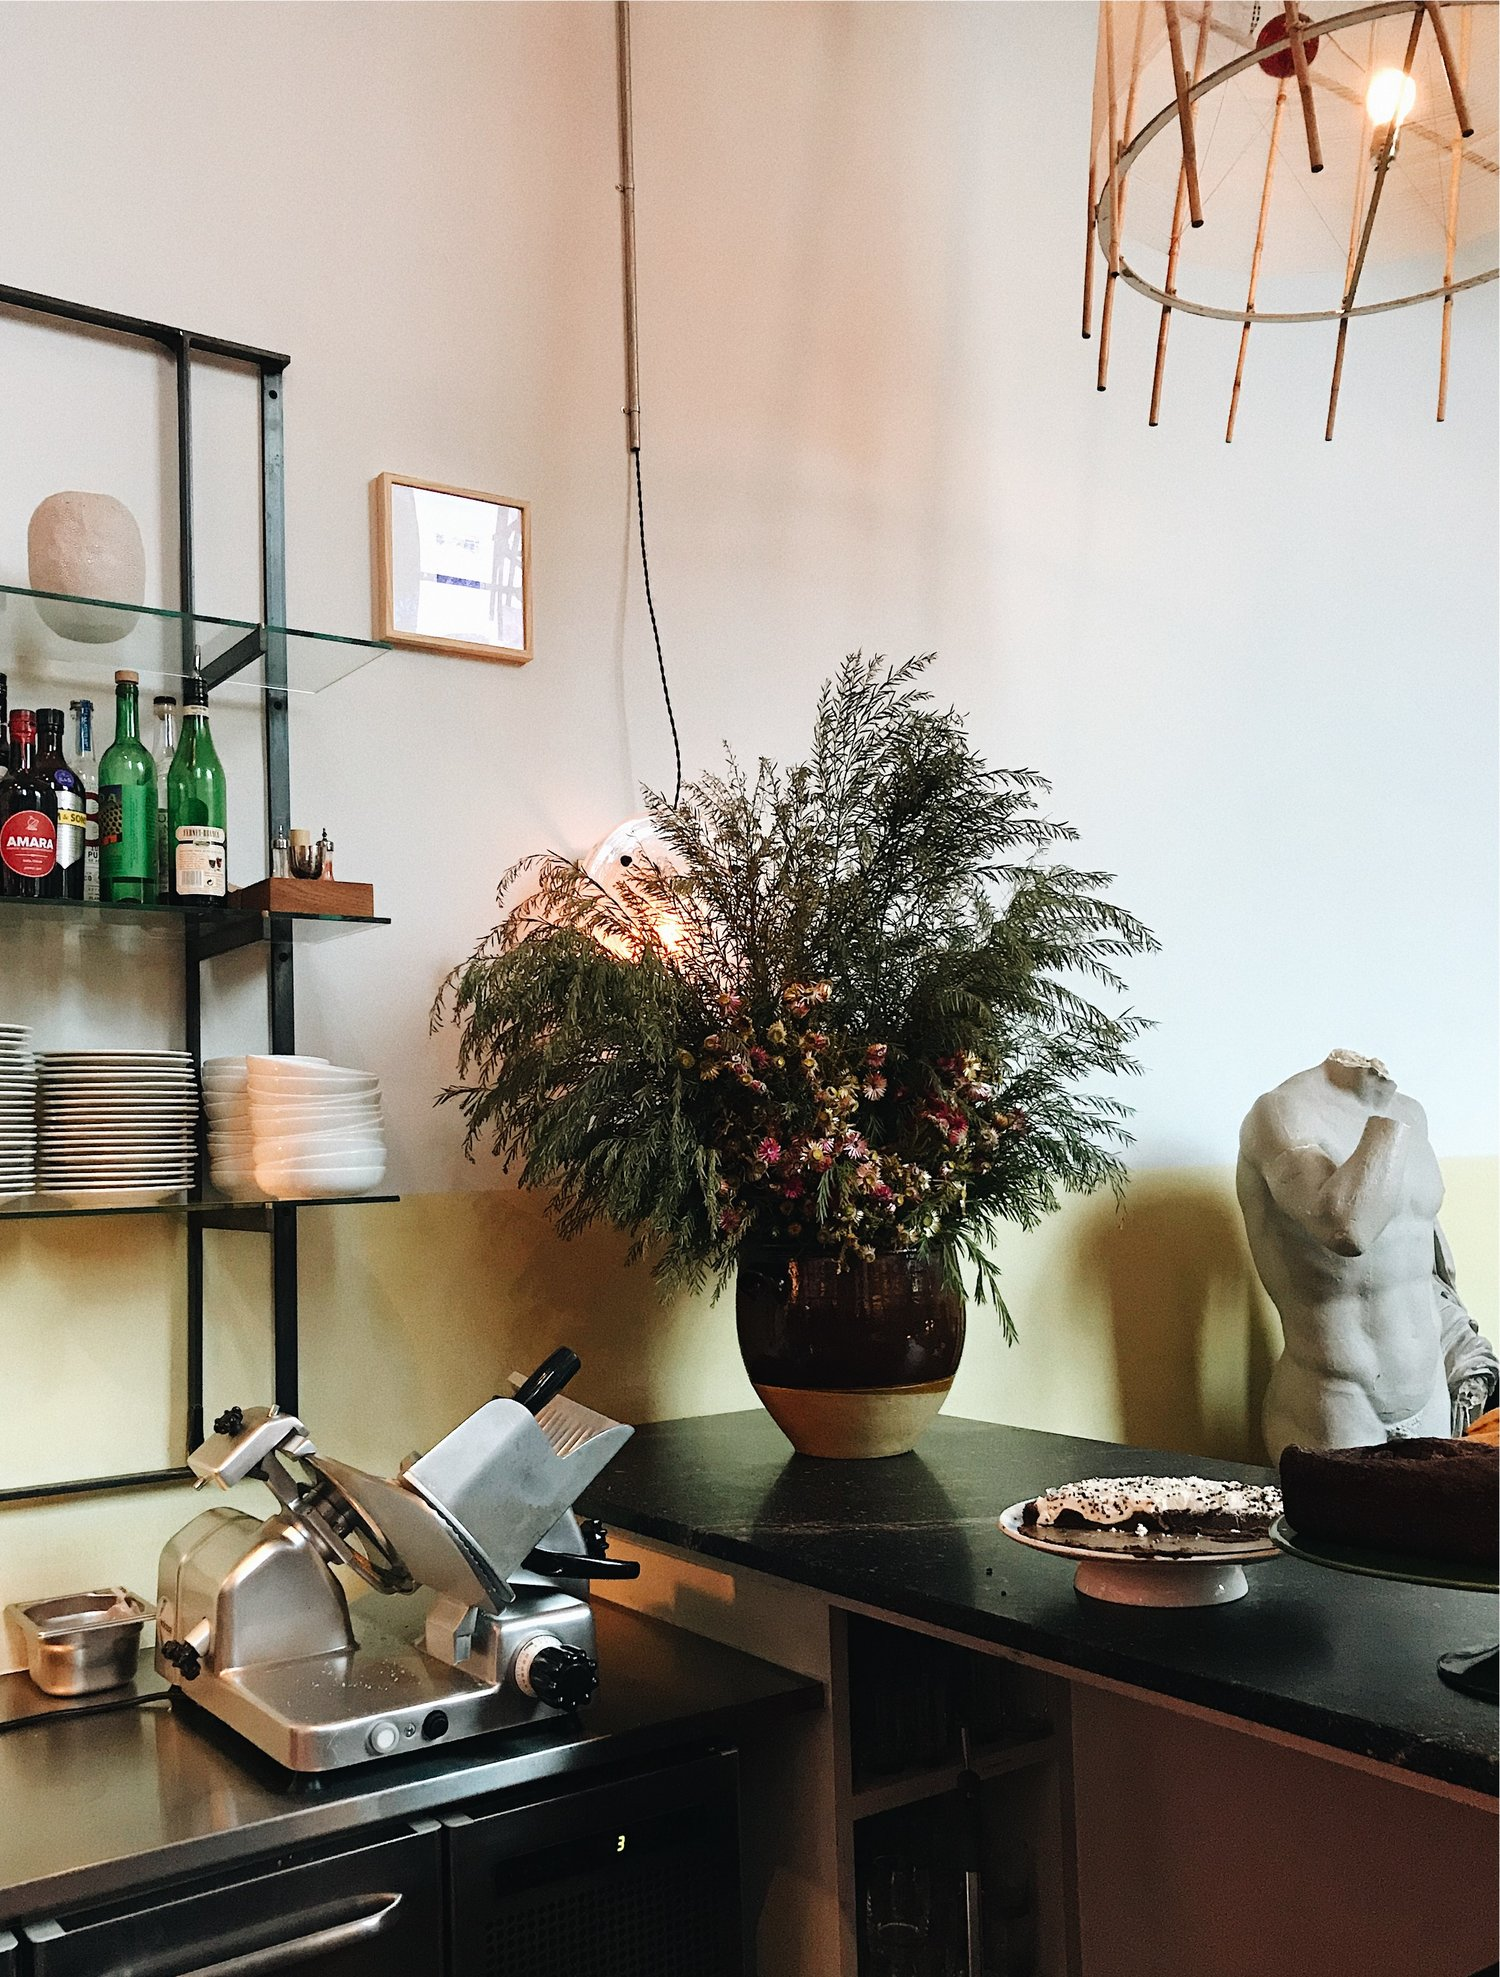 a little guide to copenhagen - a tiny curated collection of cafes, boutiques and aesthetic art galleries.